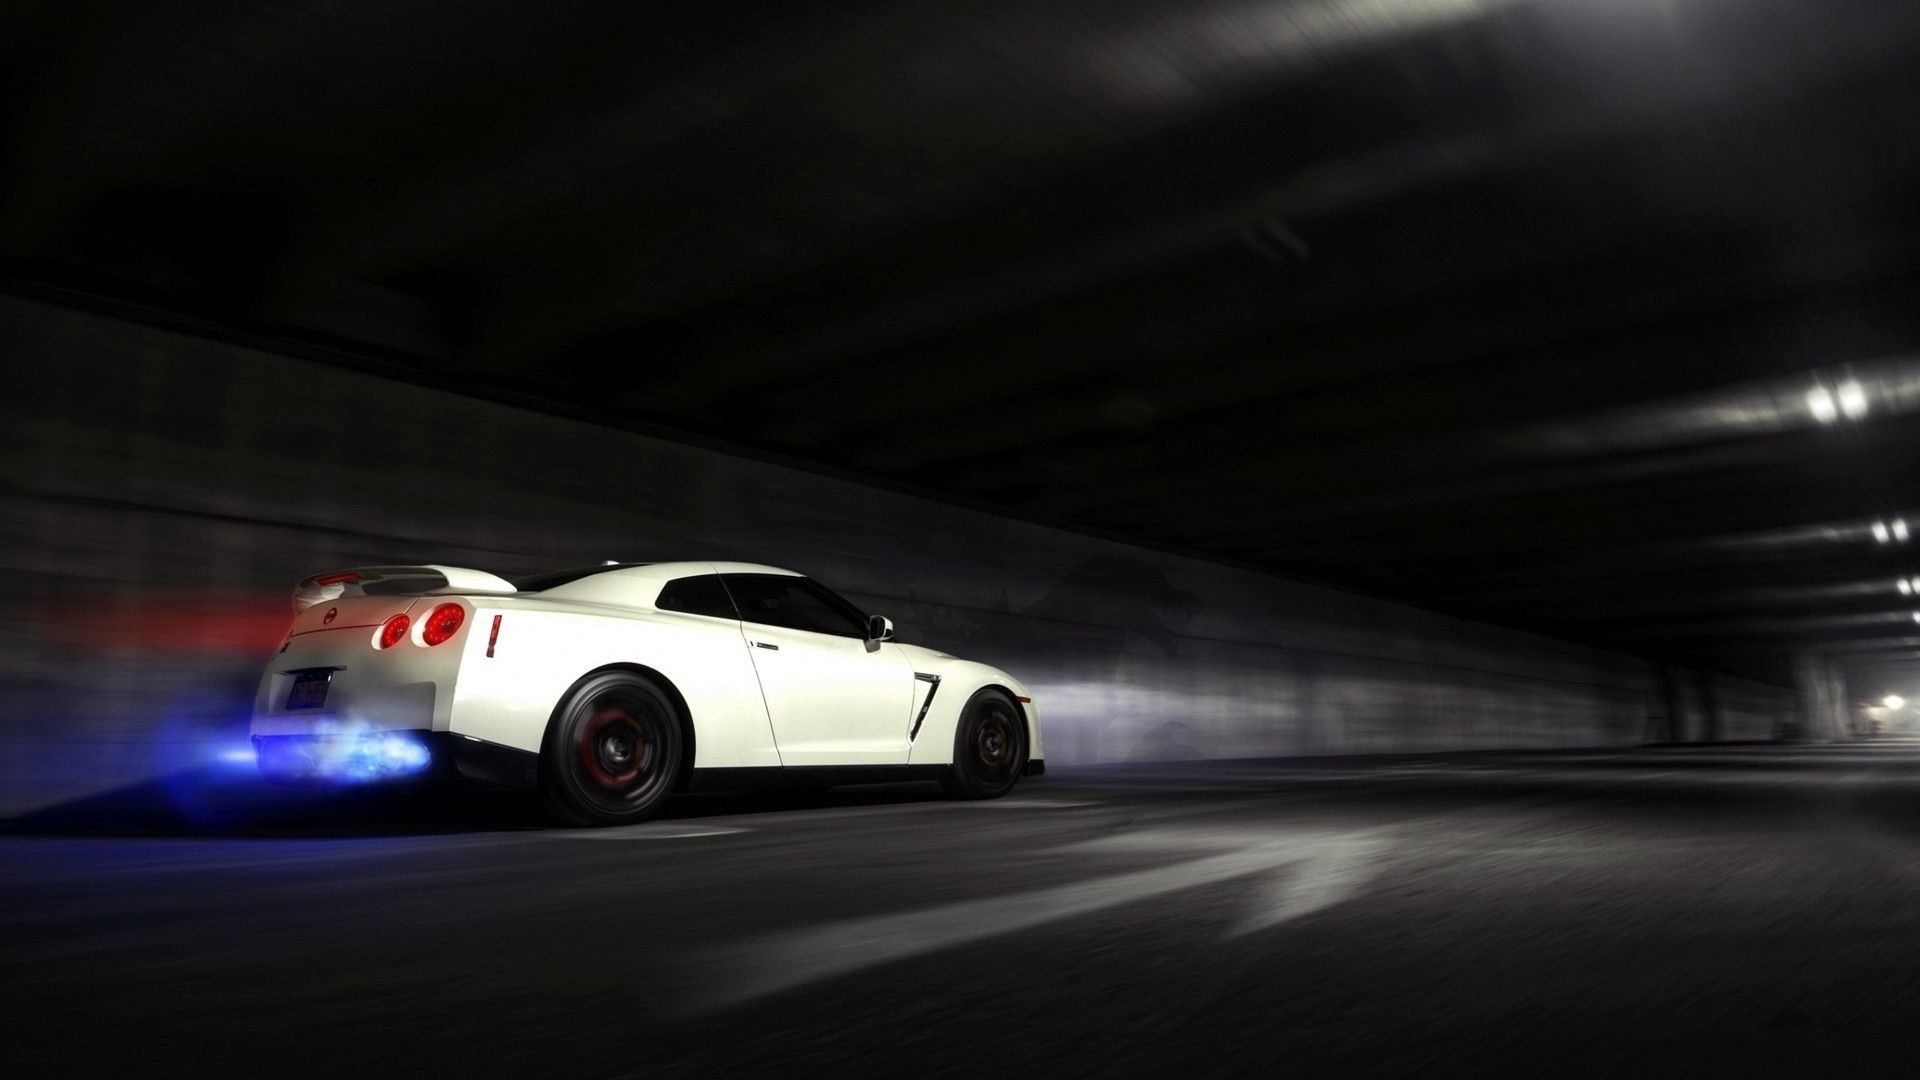 74 Gtr Iphone Wallpapers on WallpaperPlay 1920x1080